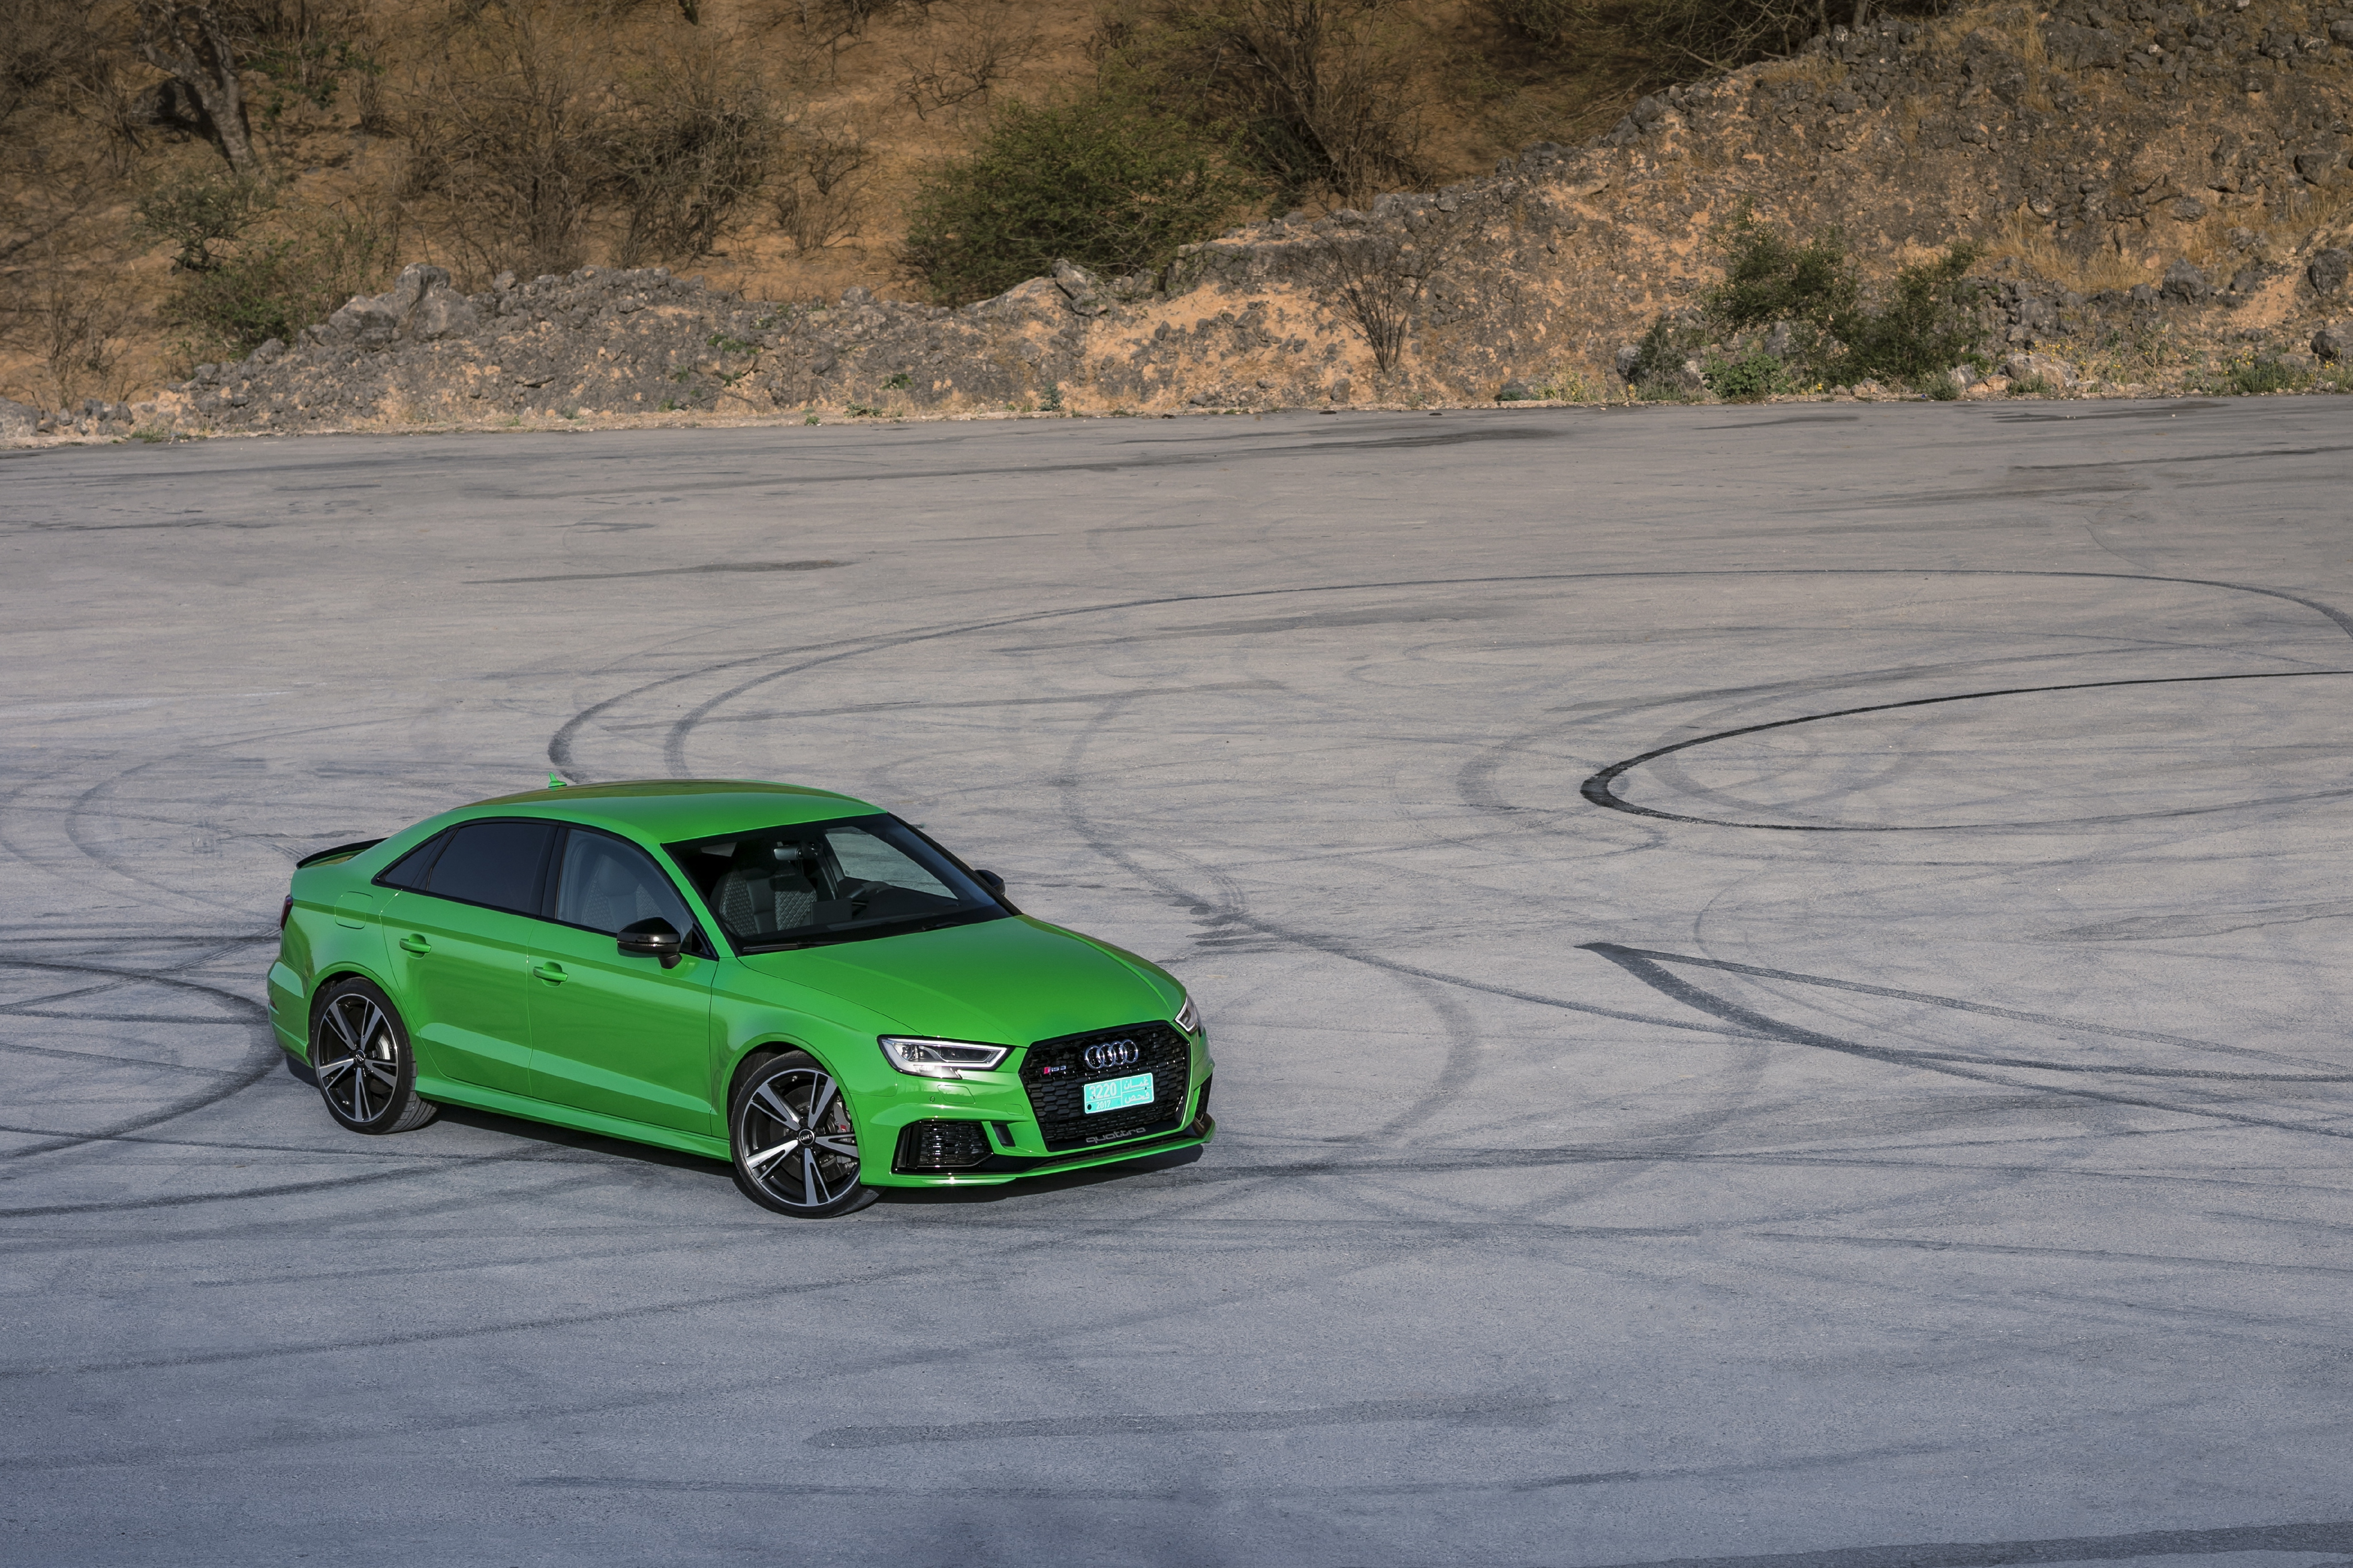 Audi Rs3 4k Ultra Hd Wallpaper Background Image 4096x2730 Id 828064 Wallpaper Abyss